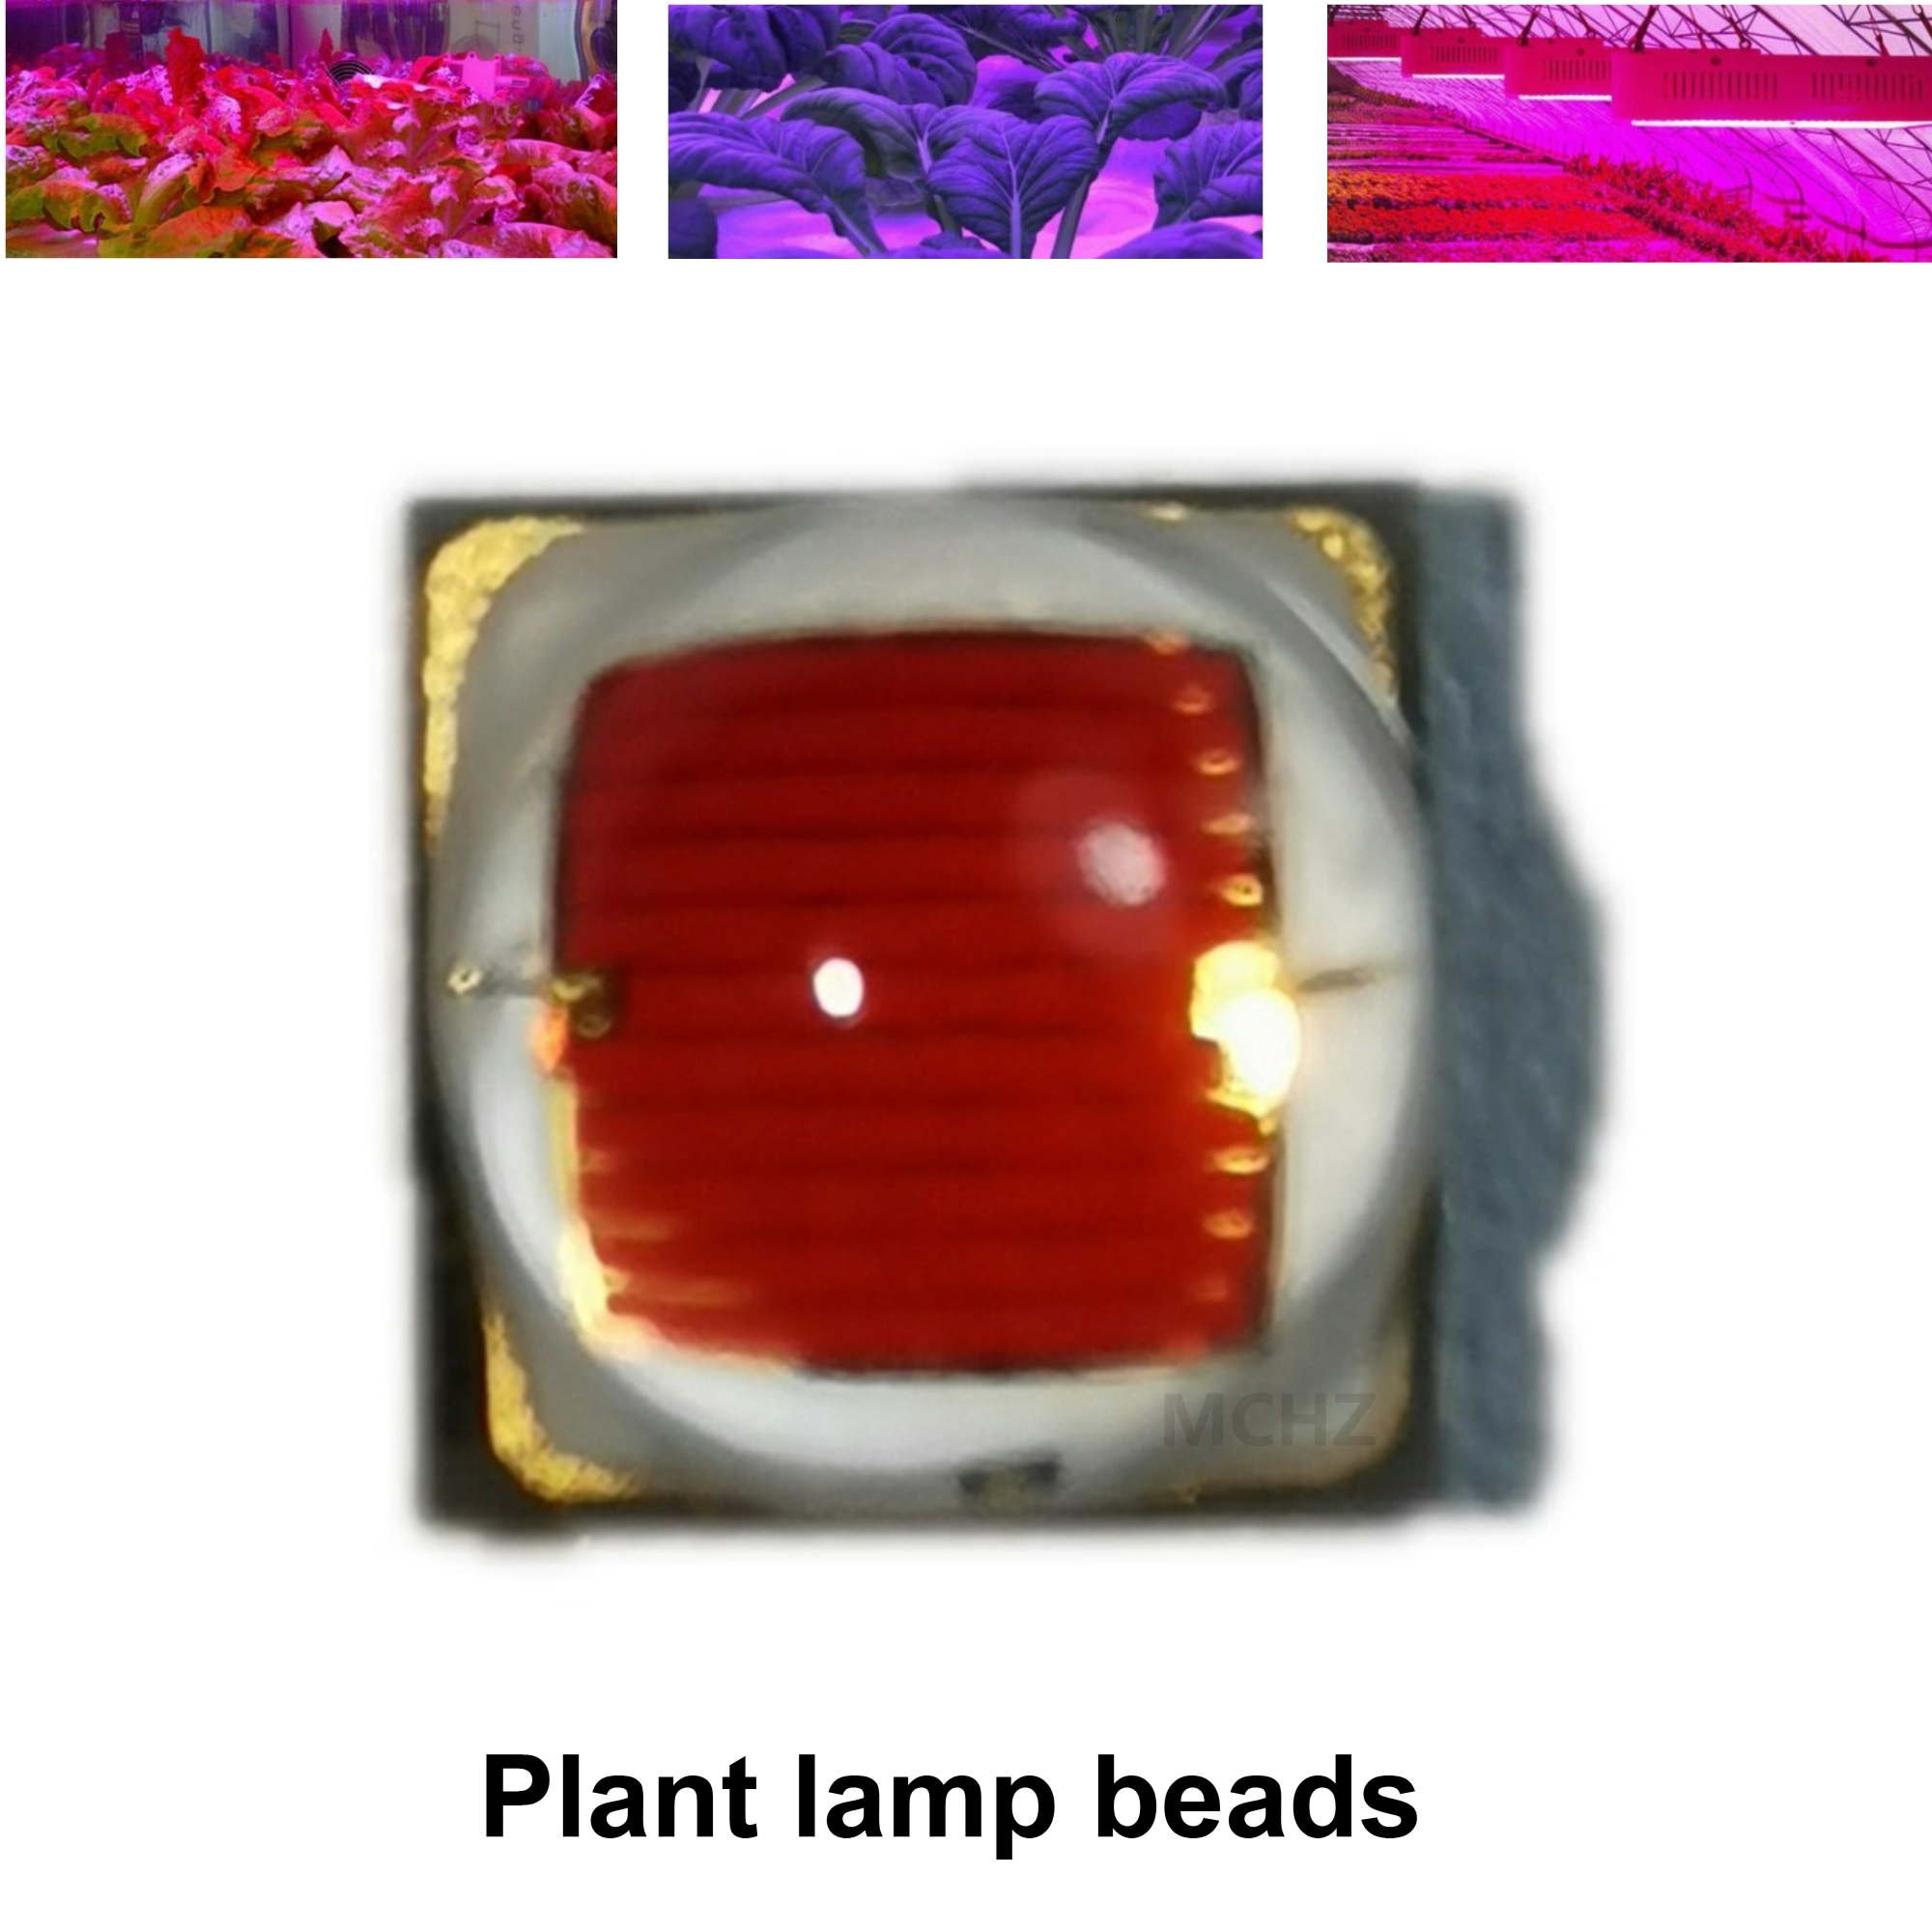 20PCS OSRAM 3030 Lens 4.7W 650nm 660nm 6W 455nm 6000K 4000K  Lamp Beads For Plant Growth